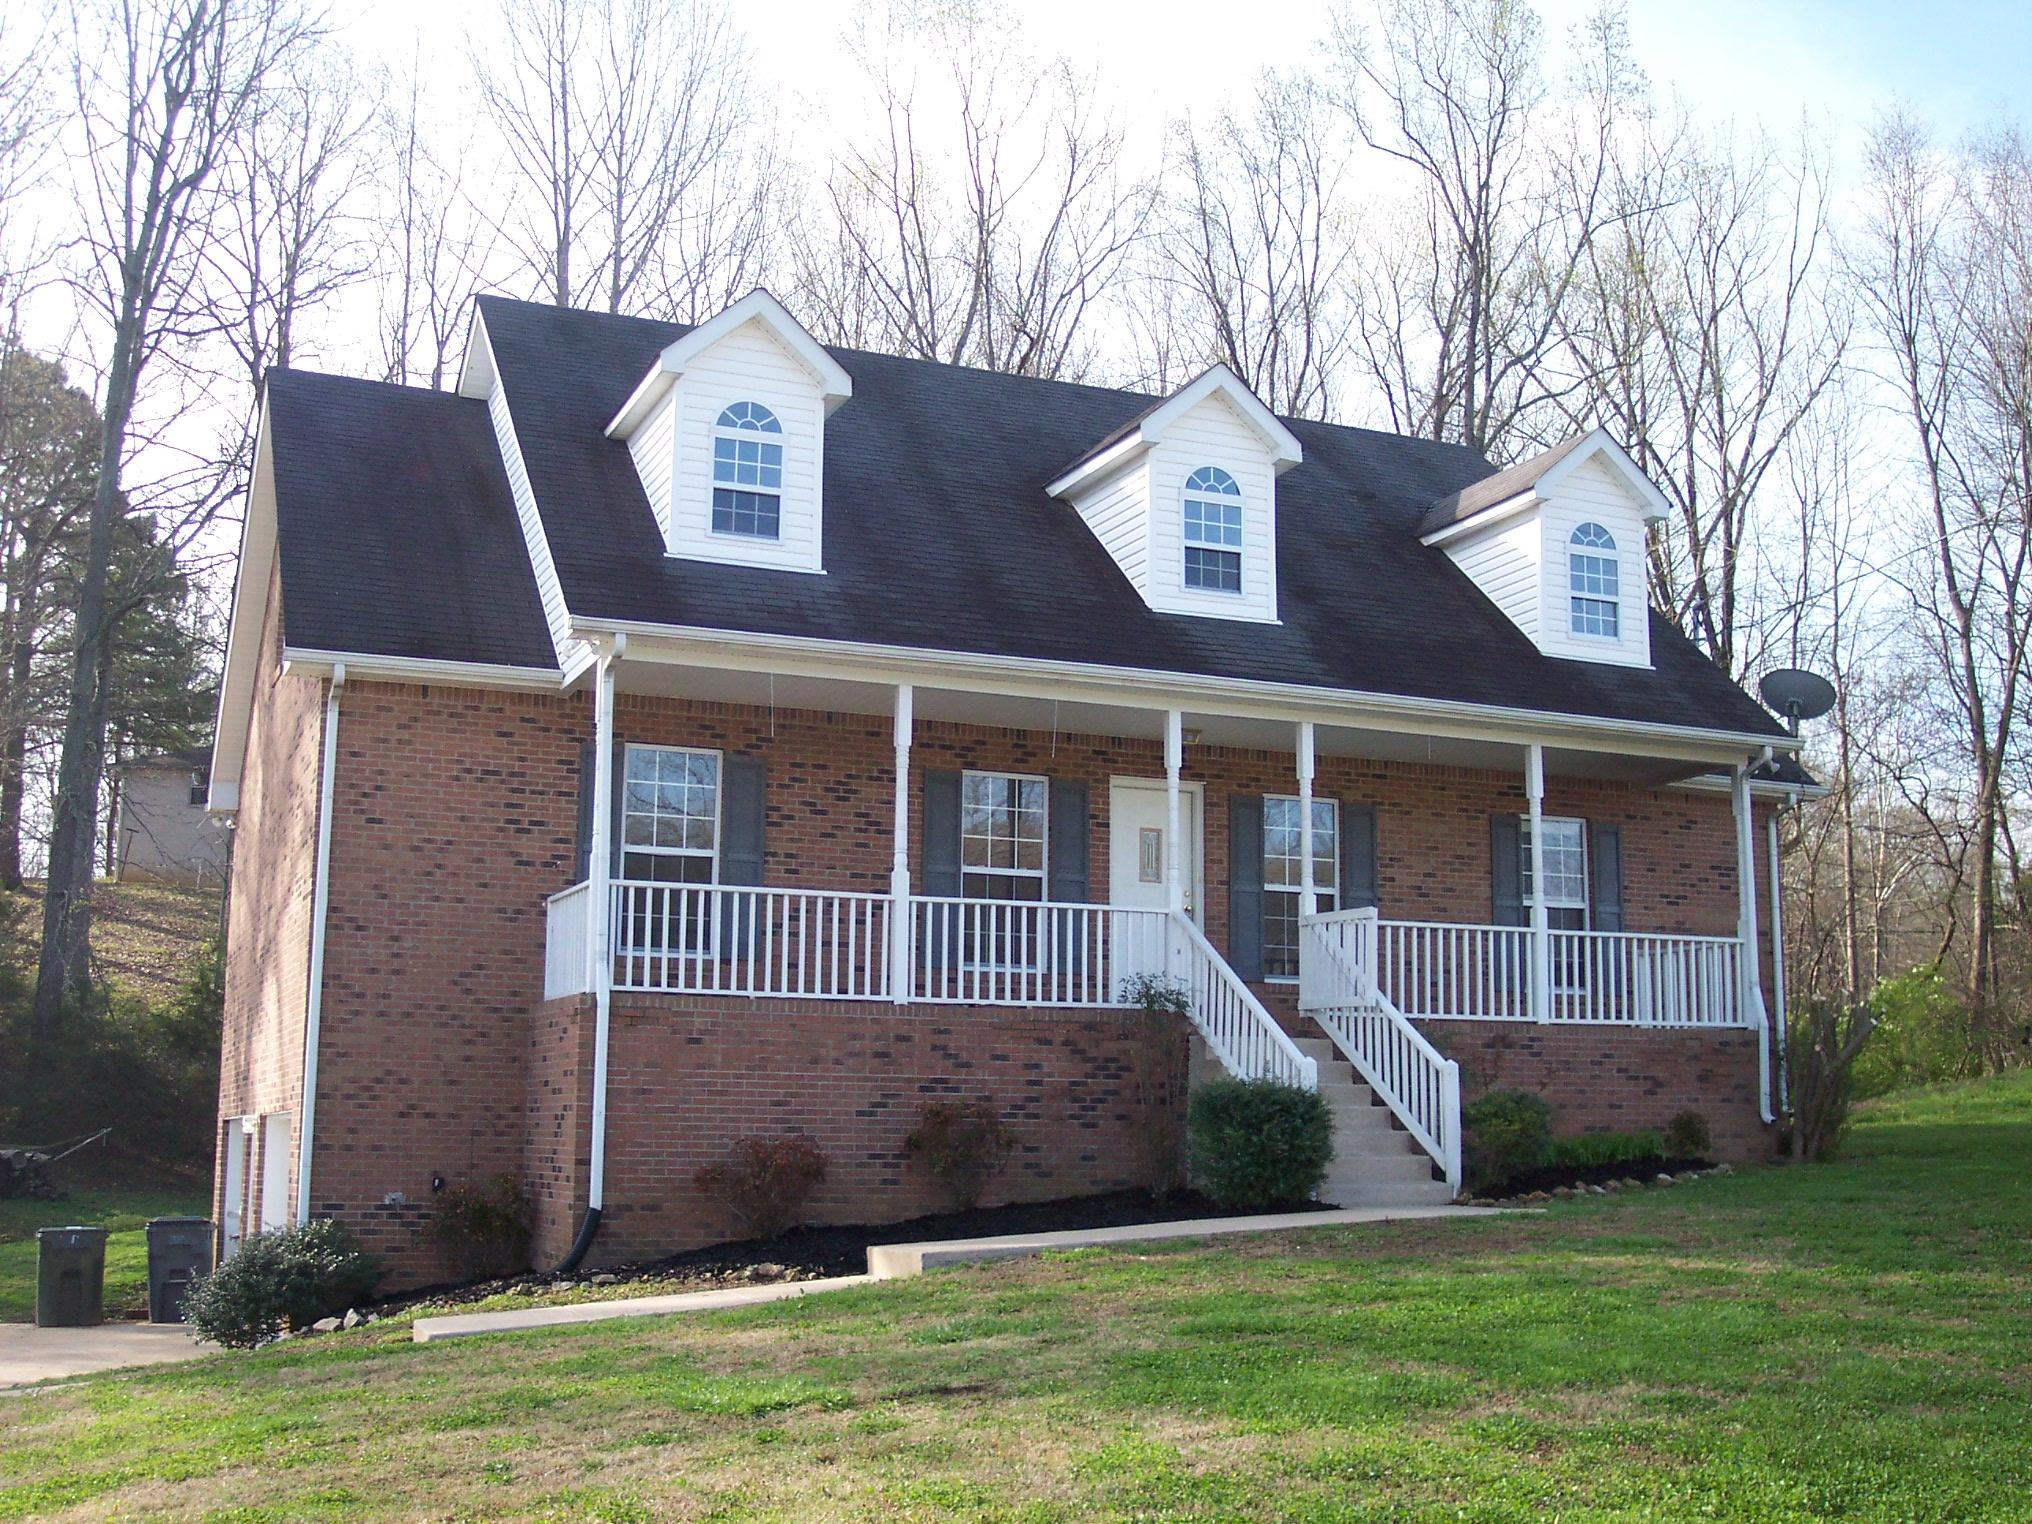 Nice Fairview Home. Open Floor plan. New Carpet and paint. Huge Open Great Room w/Fireplace Master Bedroom Suite Down. Large Bonus Upstairs. Large Unfinished Basement and Garage.